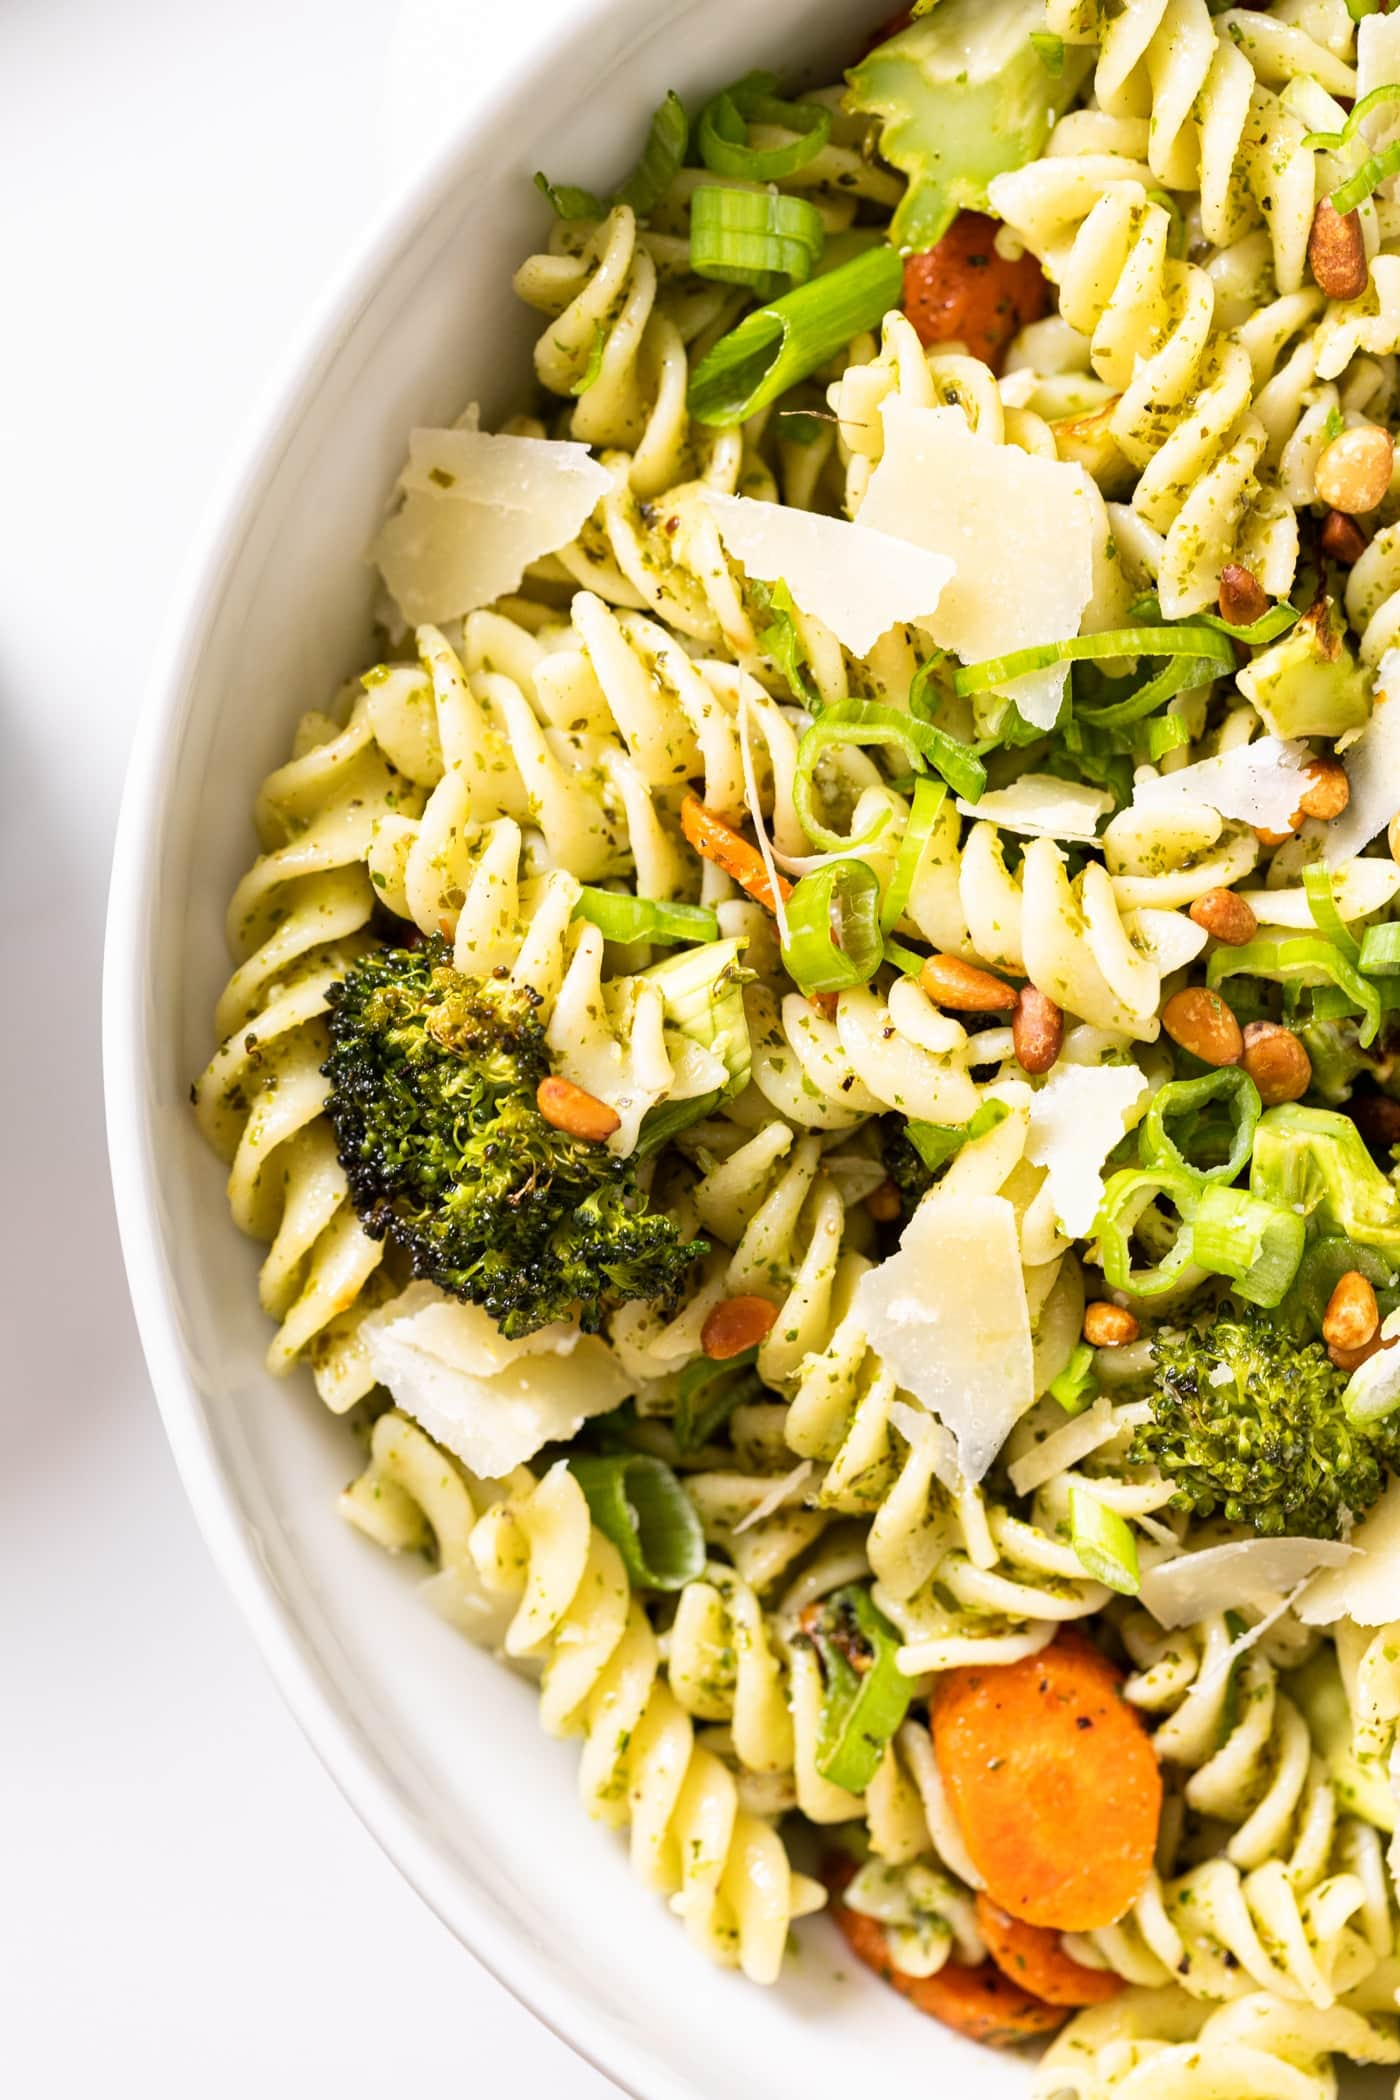 White bowl filled with pasta and carrots and broccoli and topped with Parmesan cheese and pine nuts